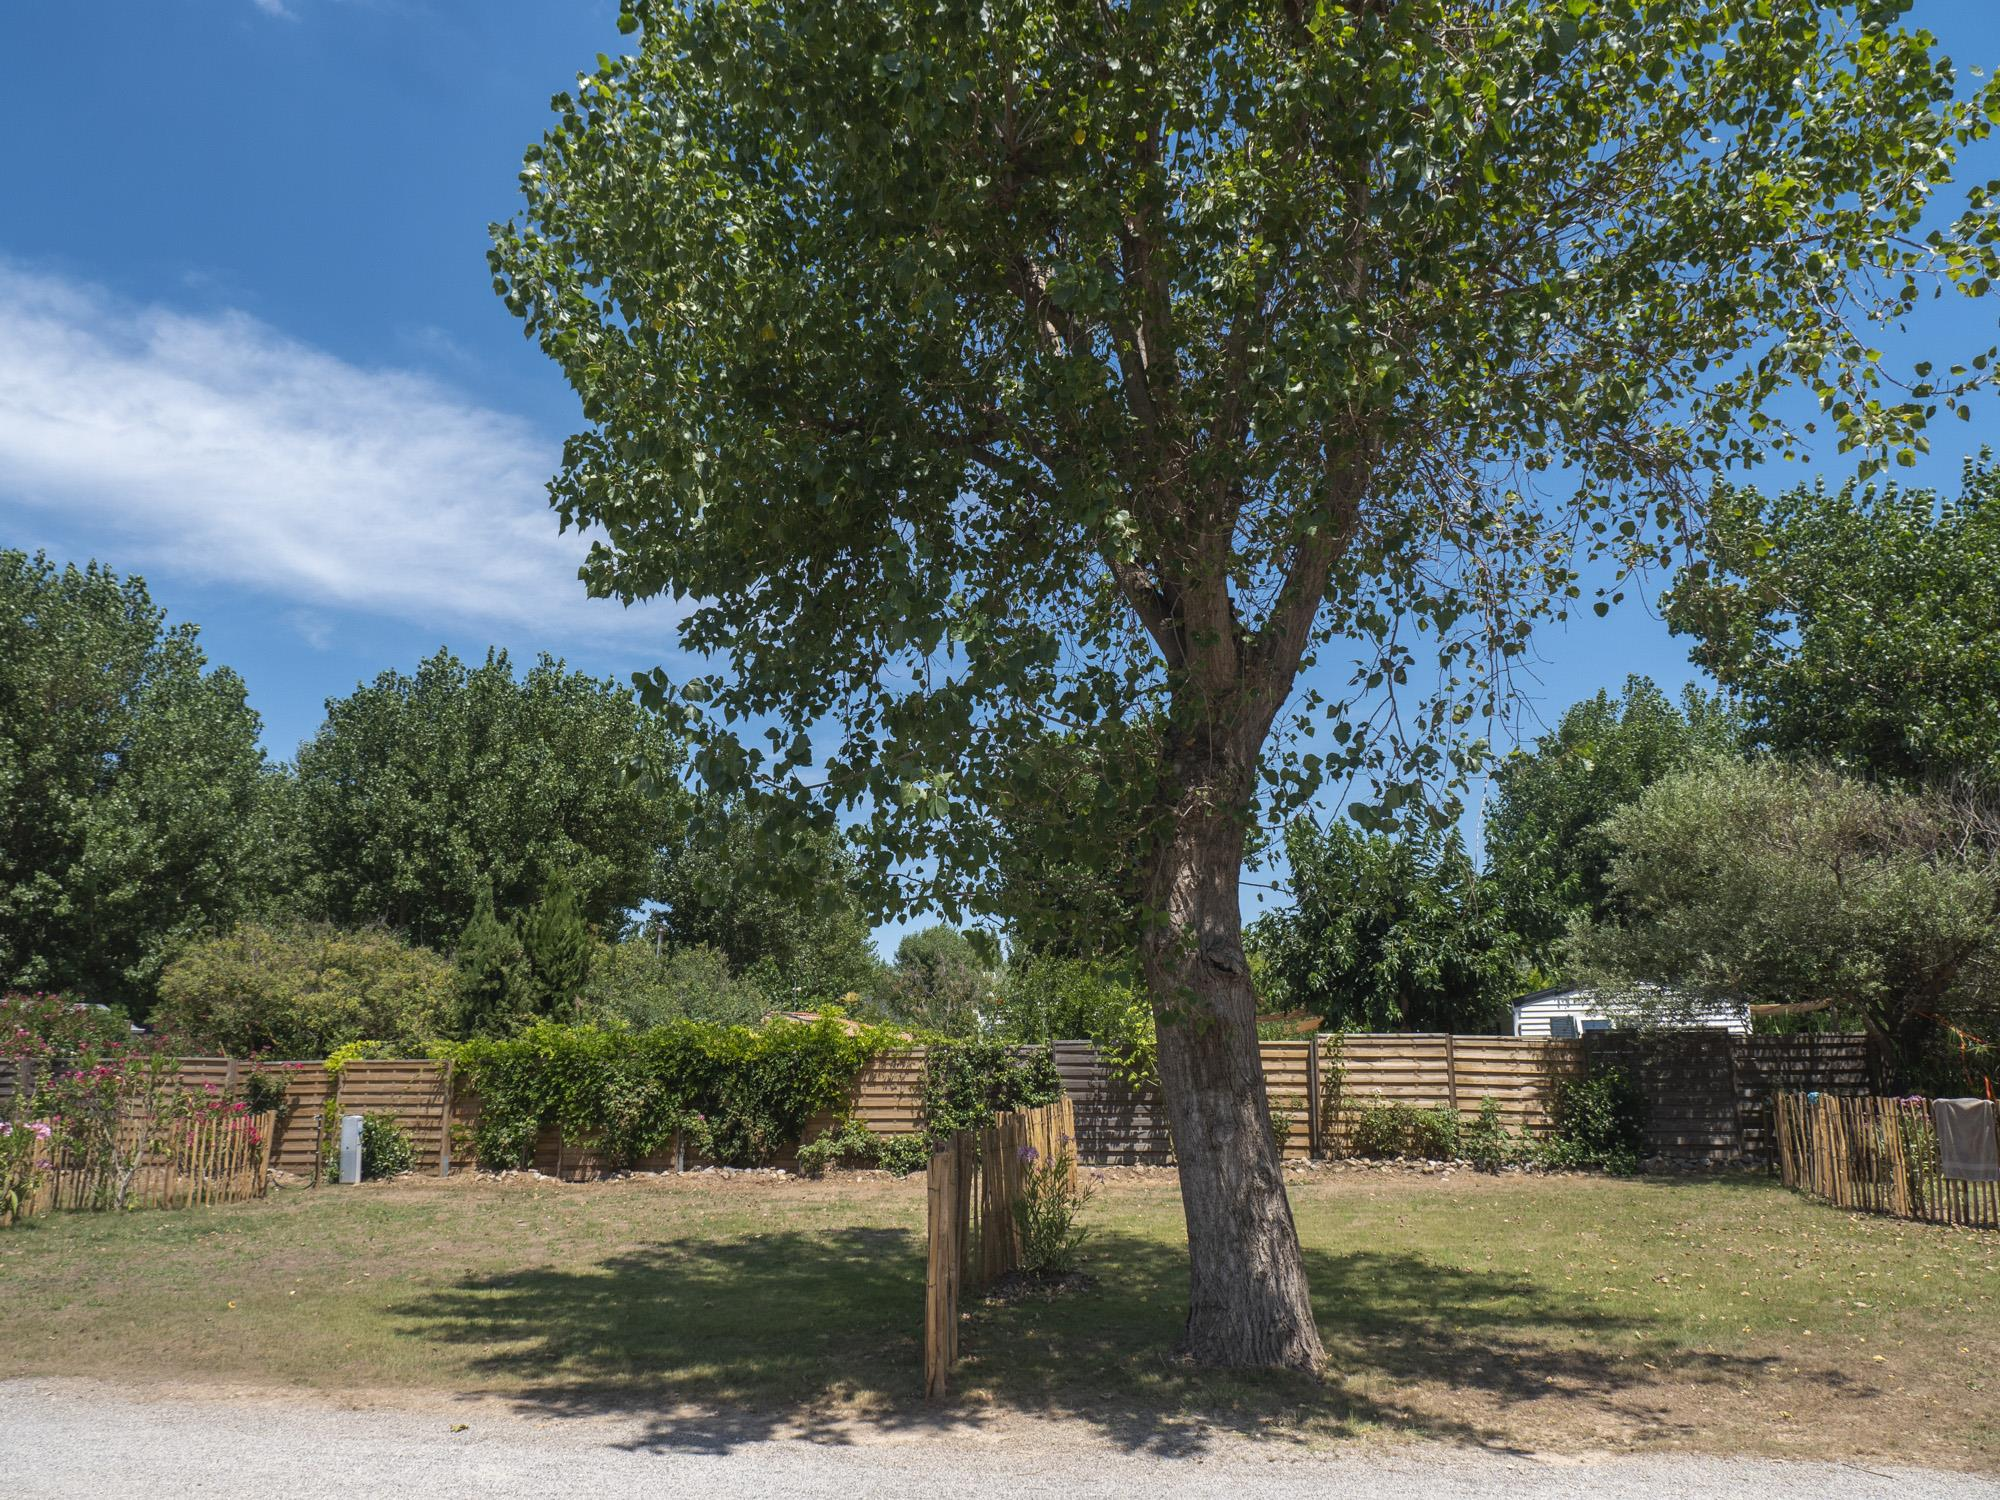 PLAGE Clos de la Grangette Pitch +/-100m² + 1 vehicle + 10A electricity